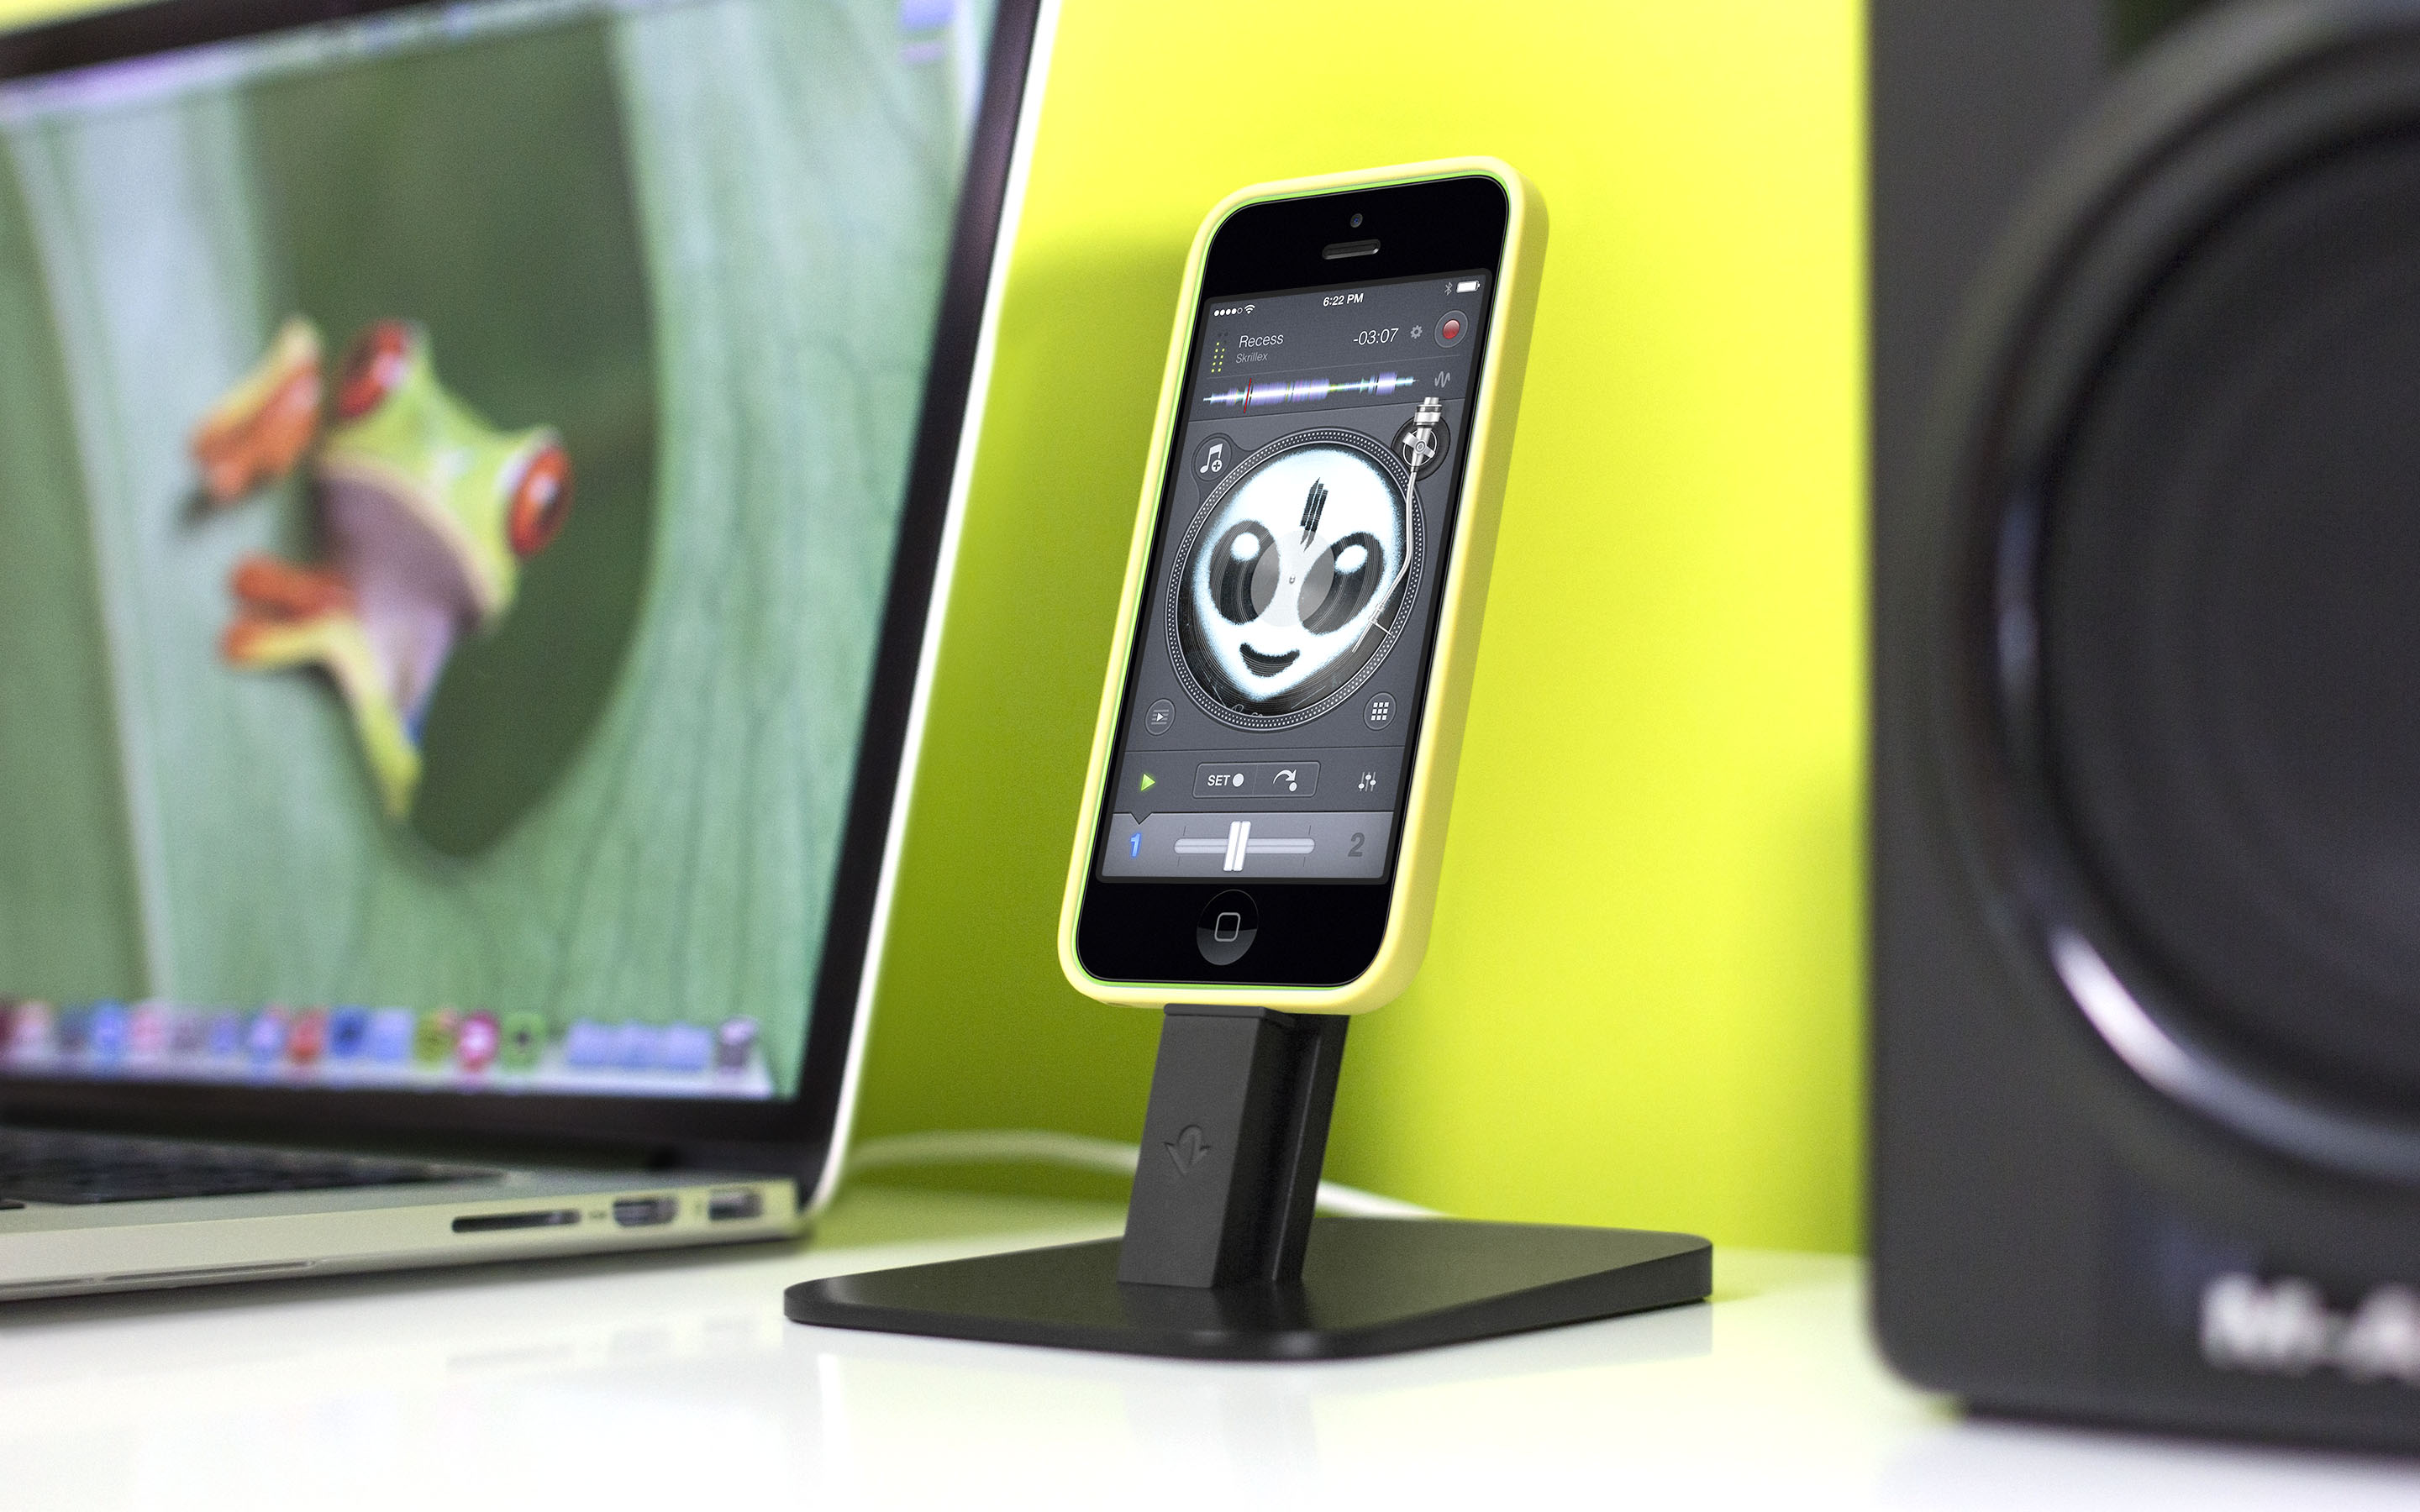 HiRise for iPhone 5 & iPad mini